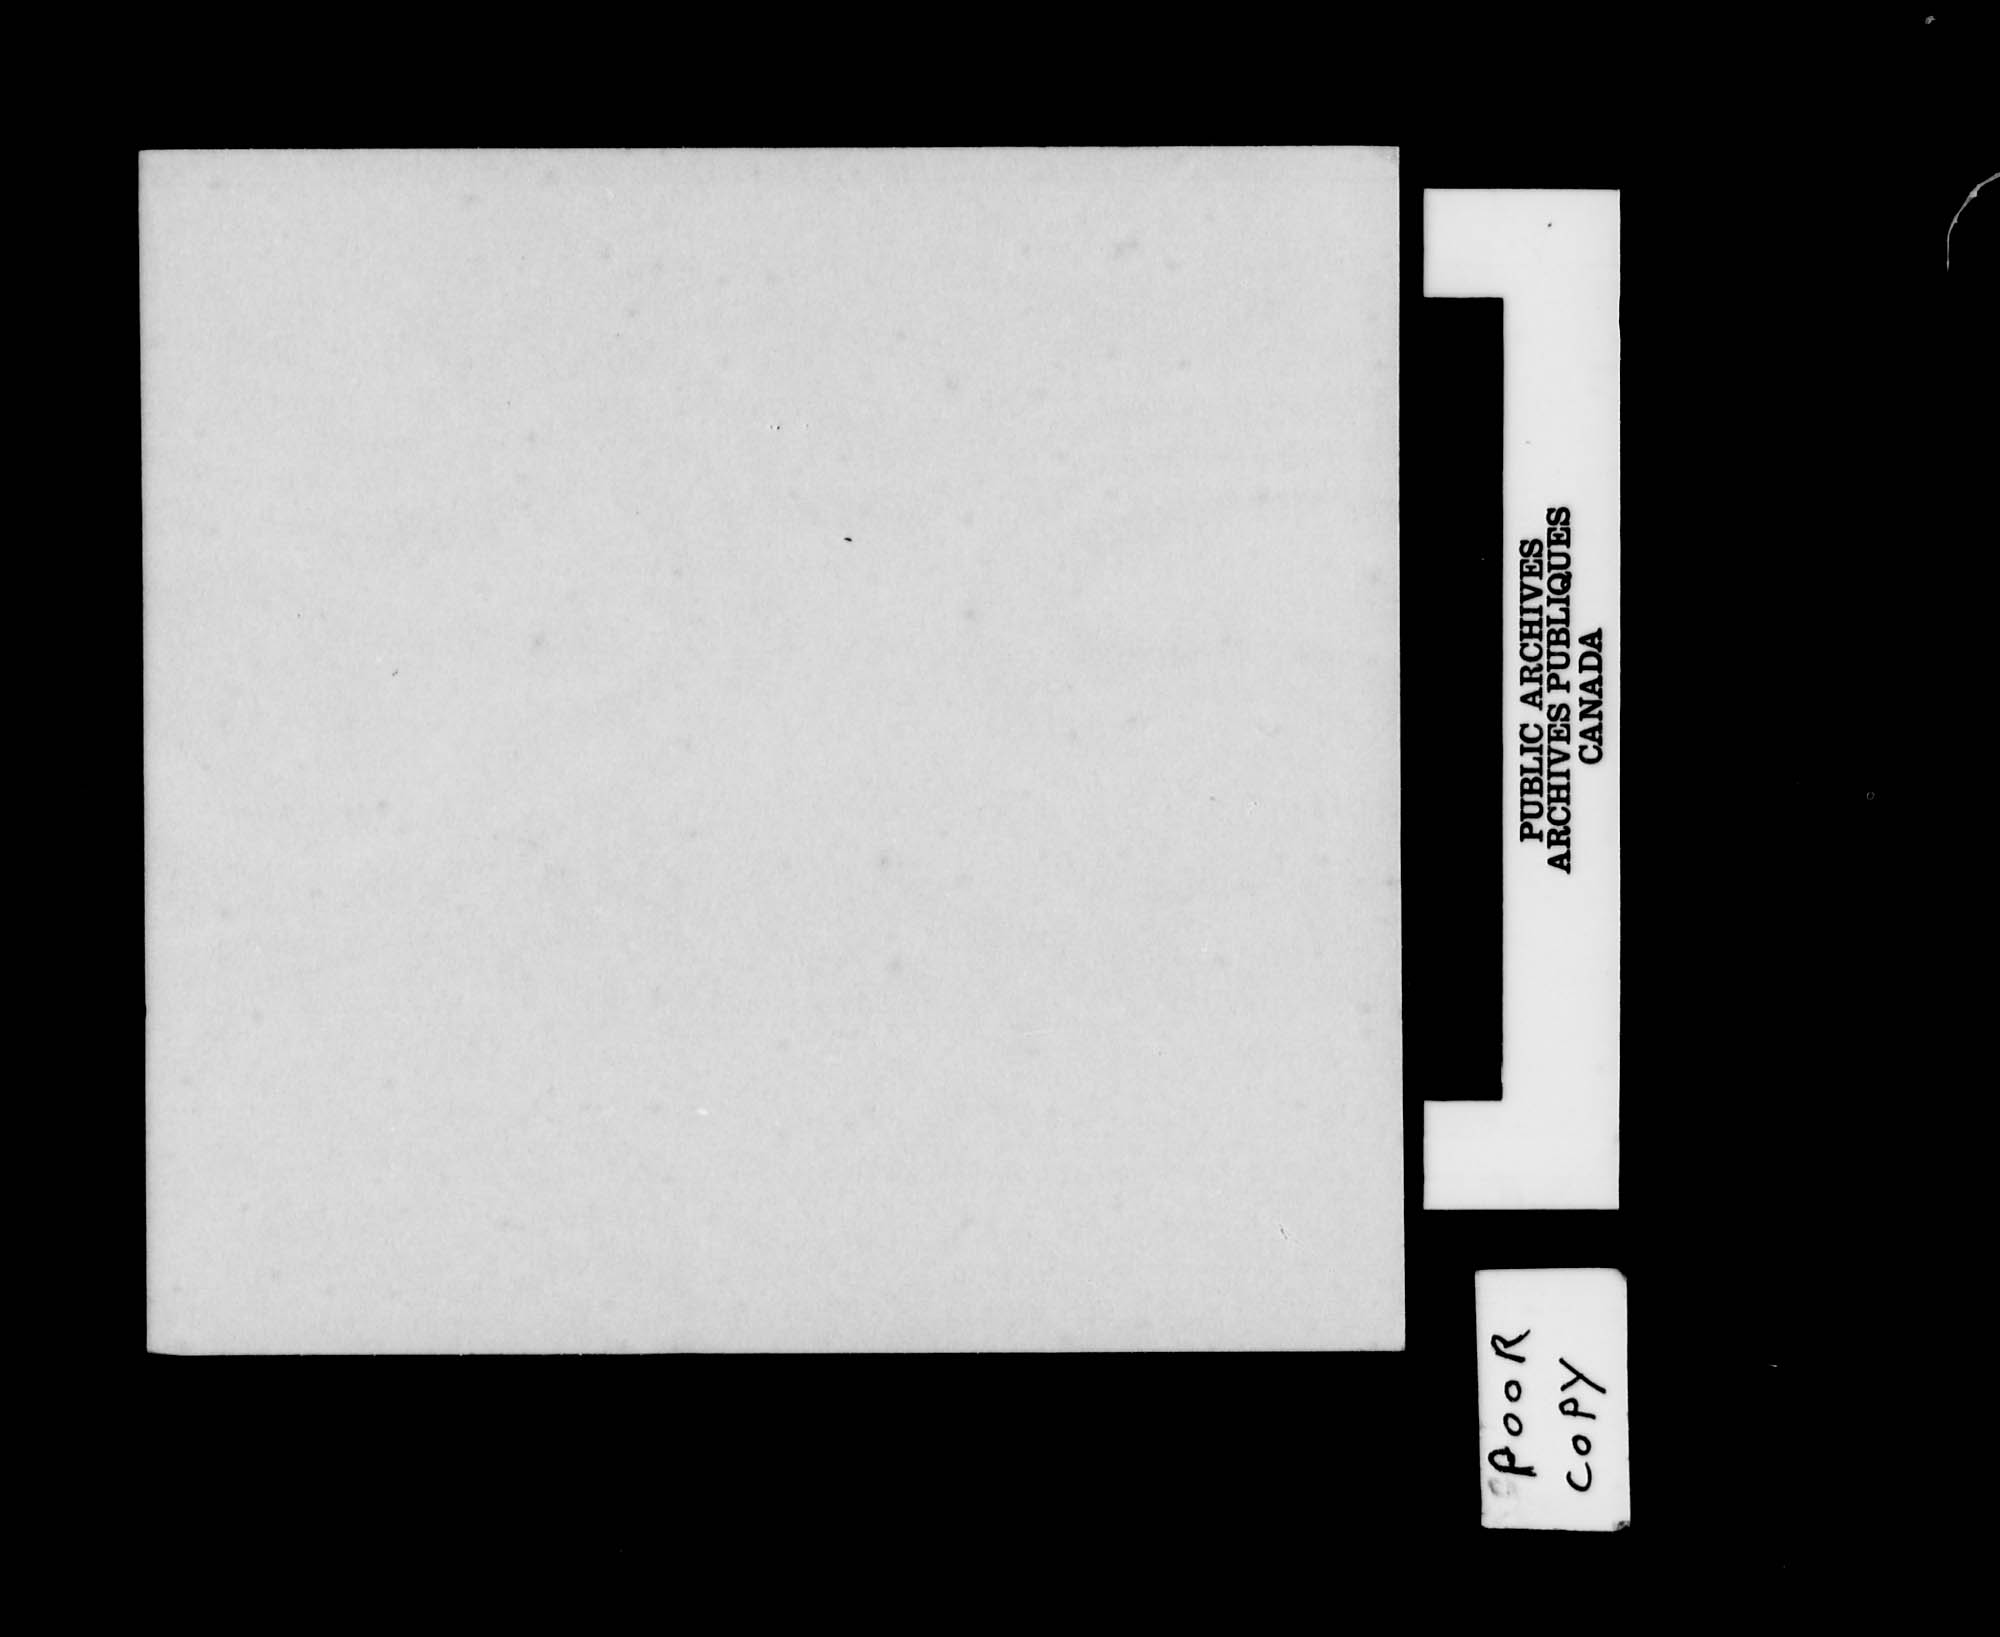 Title: School Files Series - 1879-1953 (RG10) - Mikan Number: 157505 - Microform: c-8155